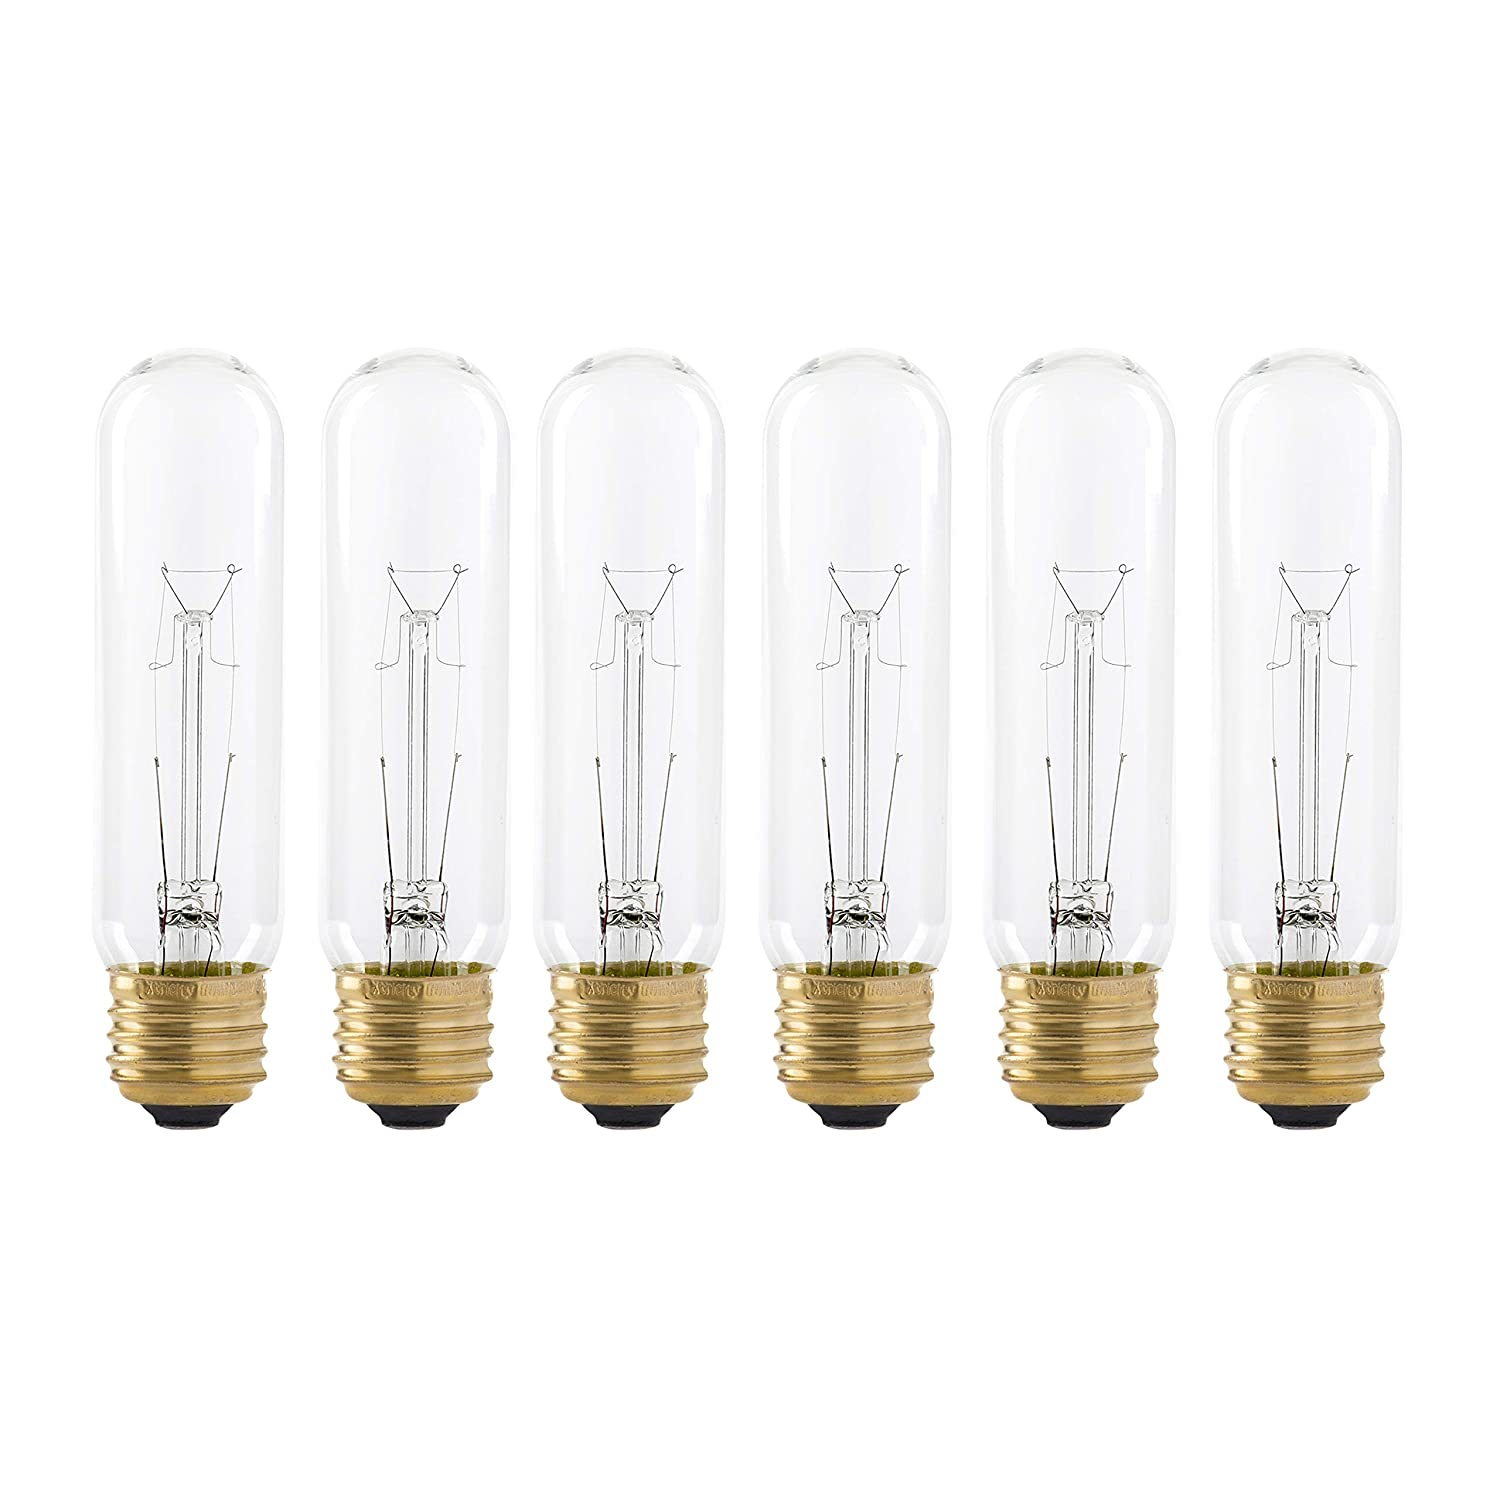 25 Watt T10 Clear Tubular Incandescent Light Bulb, 2700K Soft White, E26 Medium Base, 160 Lumens, 120V, (6 Pack)